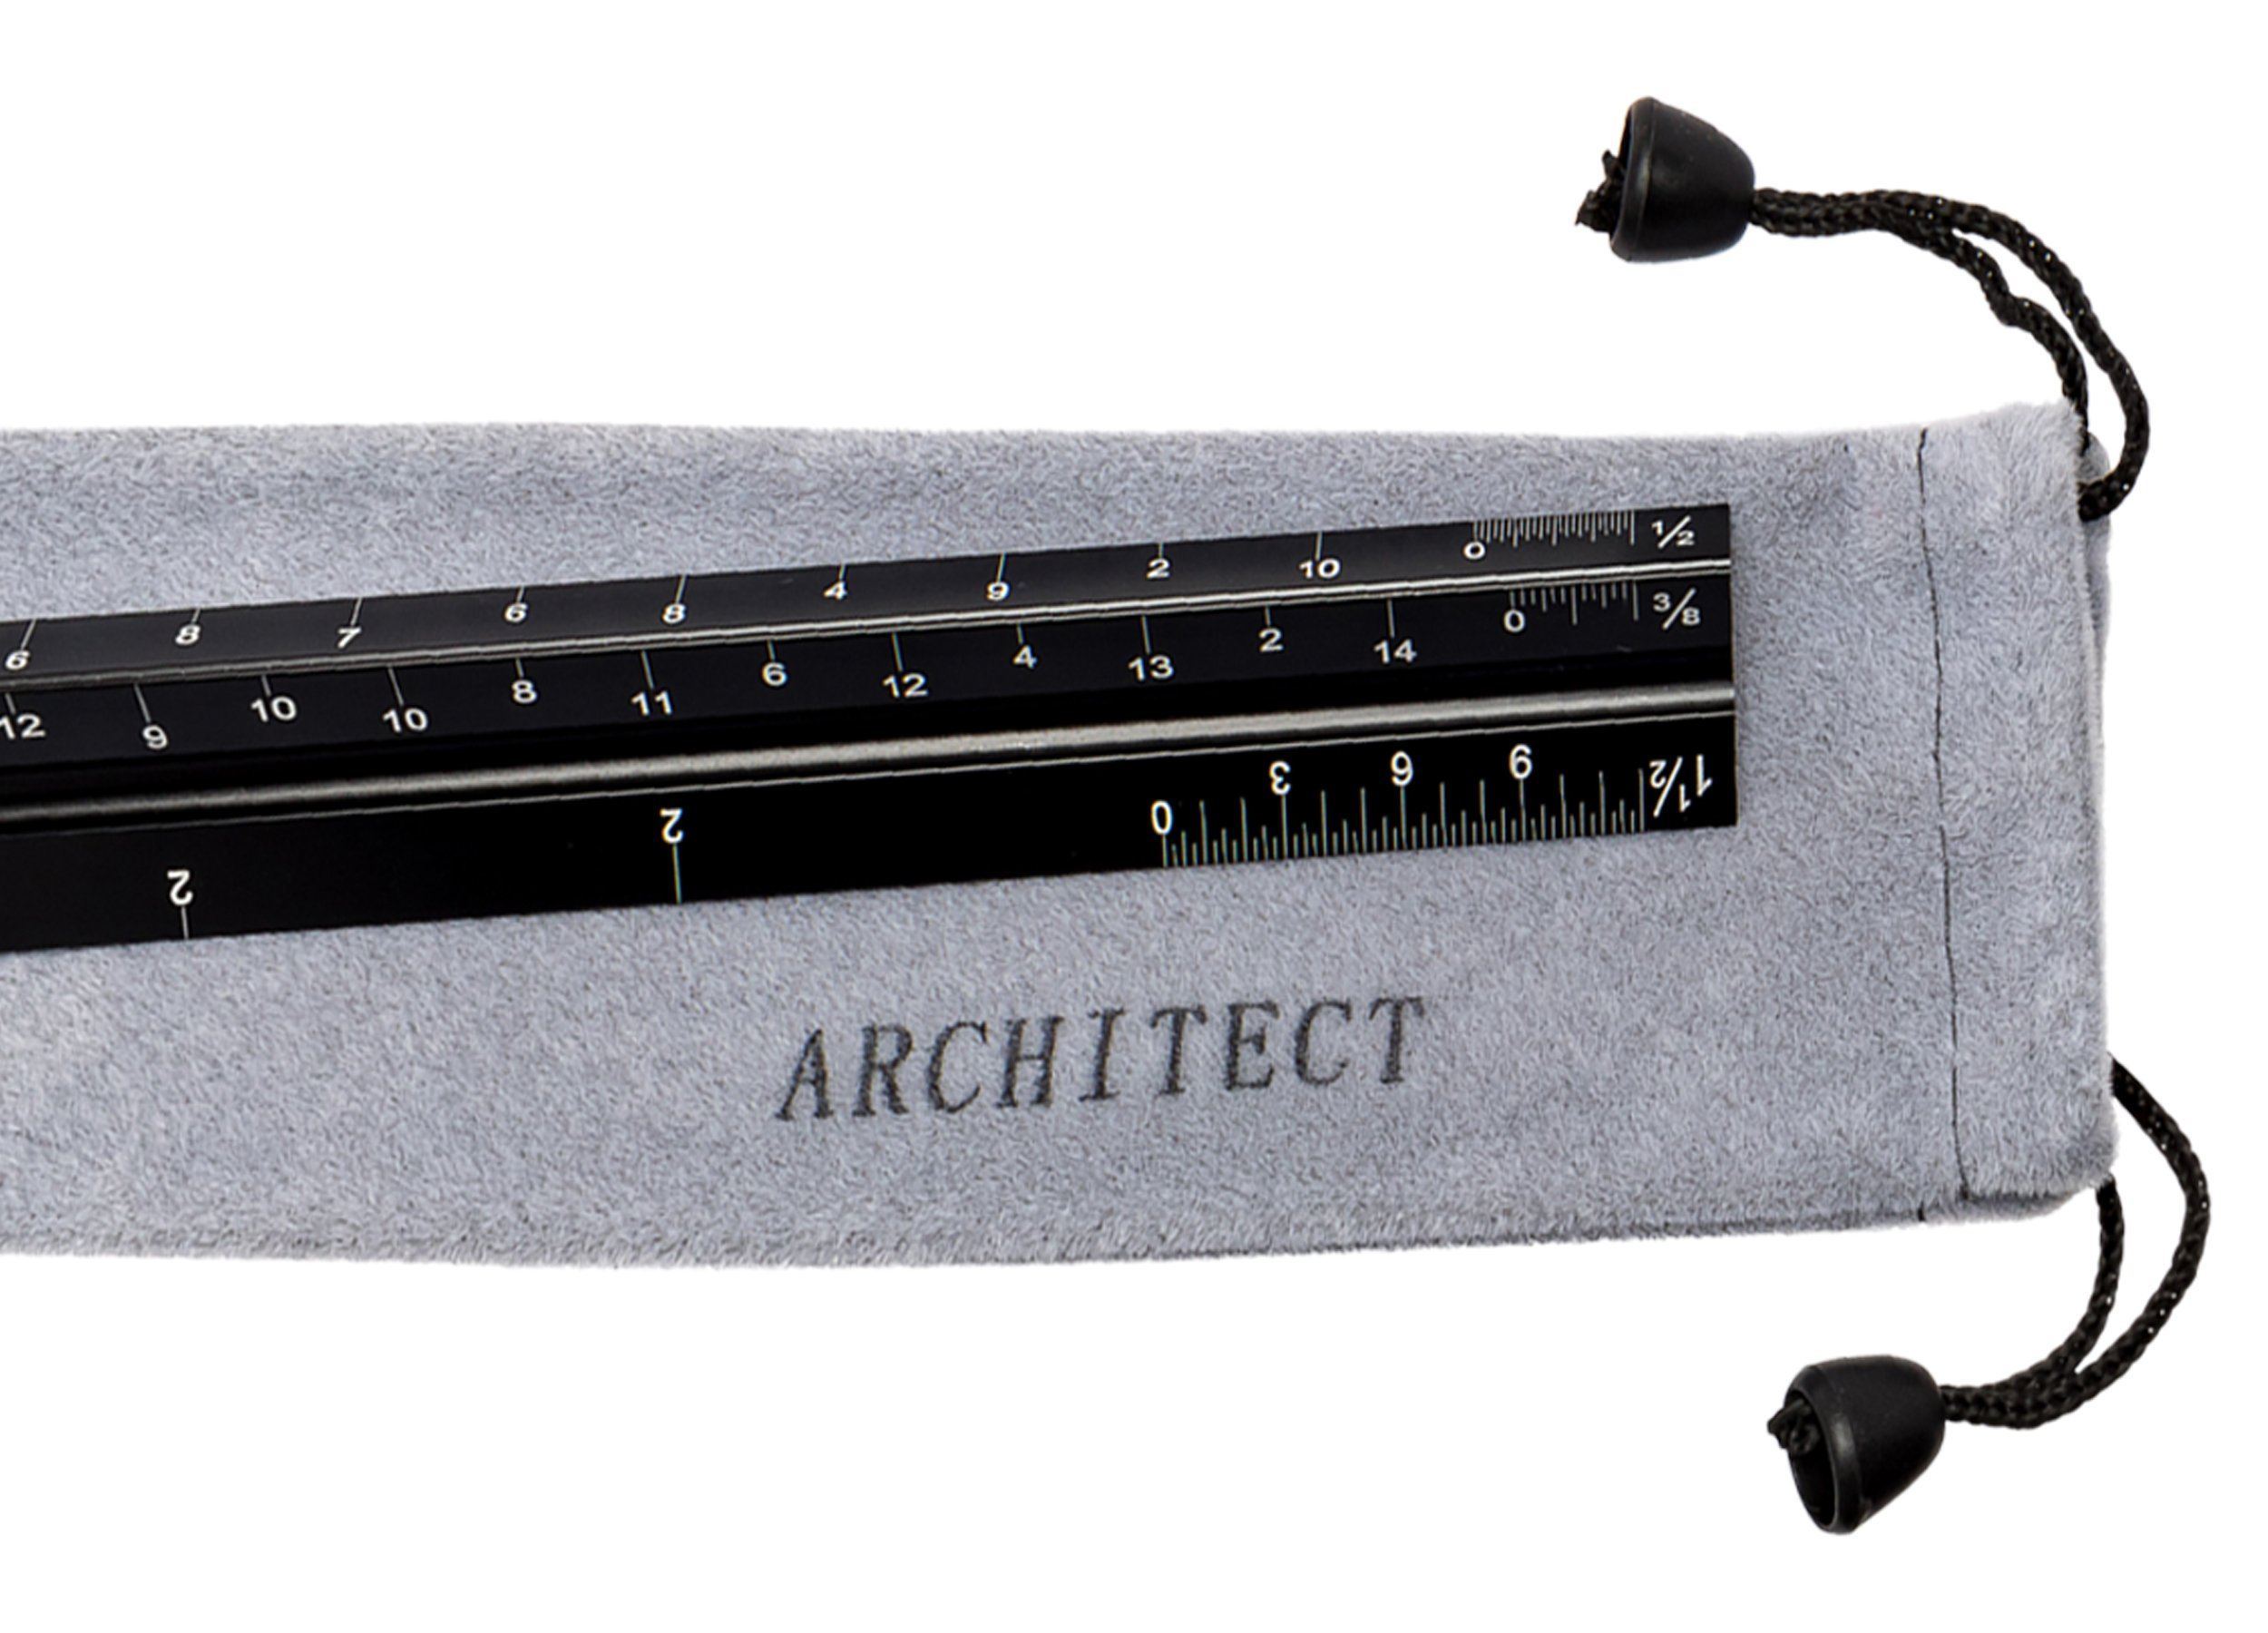 Avant Design 12'' Architectural Scale Ruler with Carrying Pouch (Imperial) - Solid Aluminum Core, Anodized Black with Laser Etched Markings - Ideal for Architects, Students, Draftsman, and Engineers by Avant Design